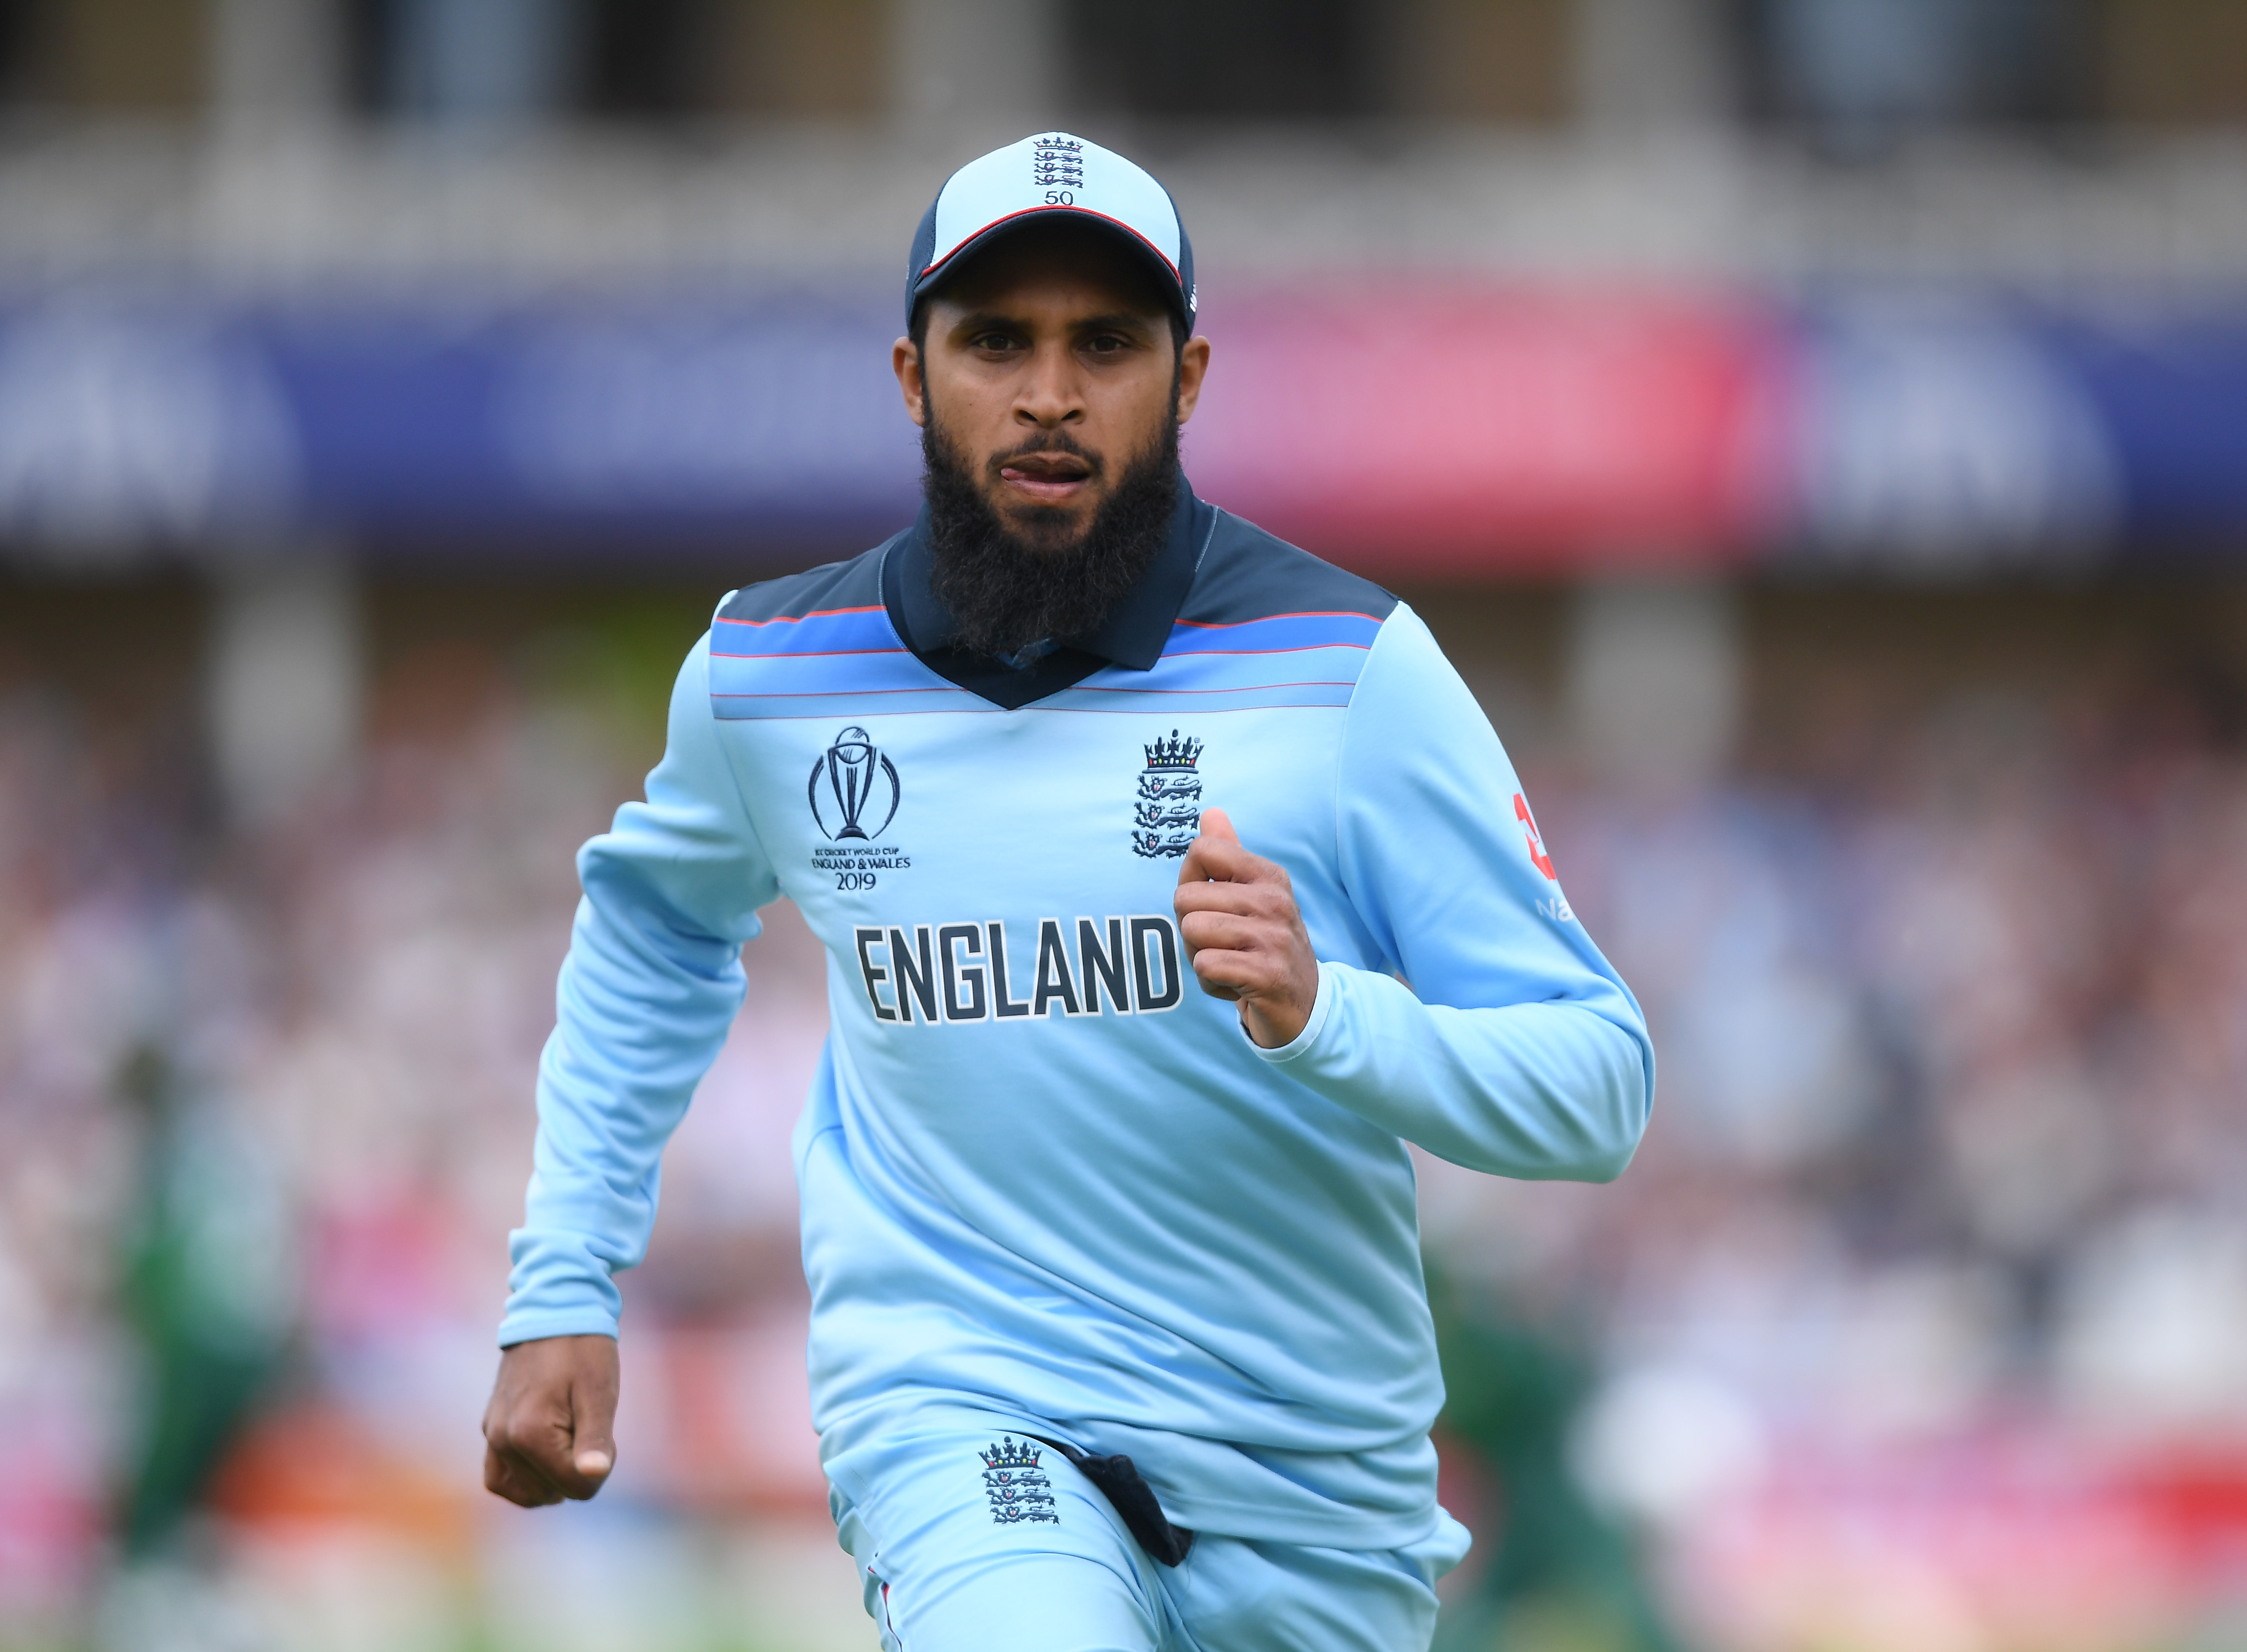 Adil Rashid ruled out for rest of English season